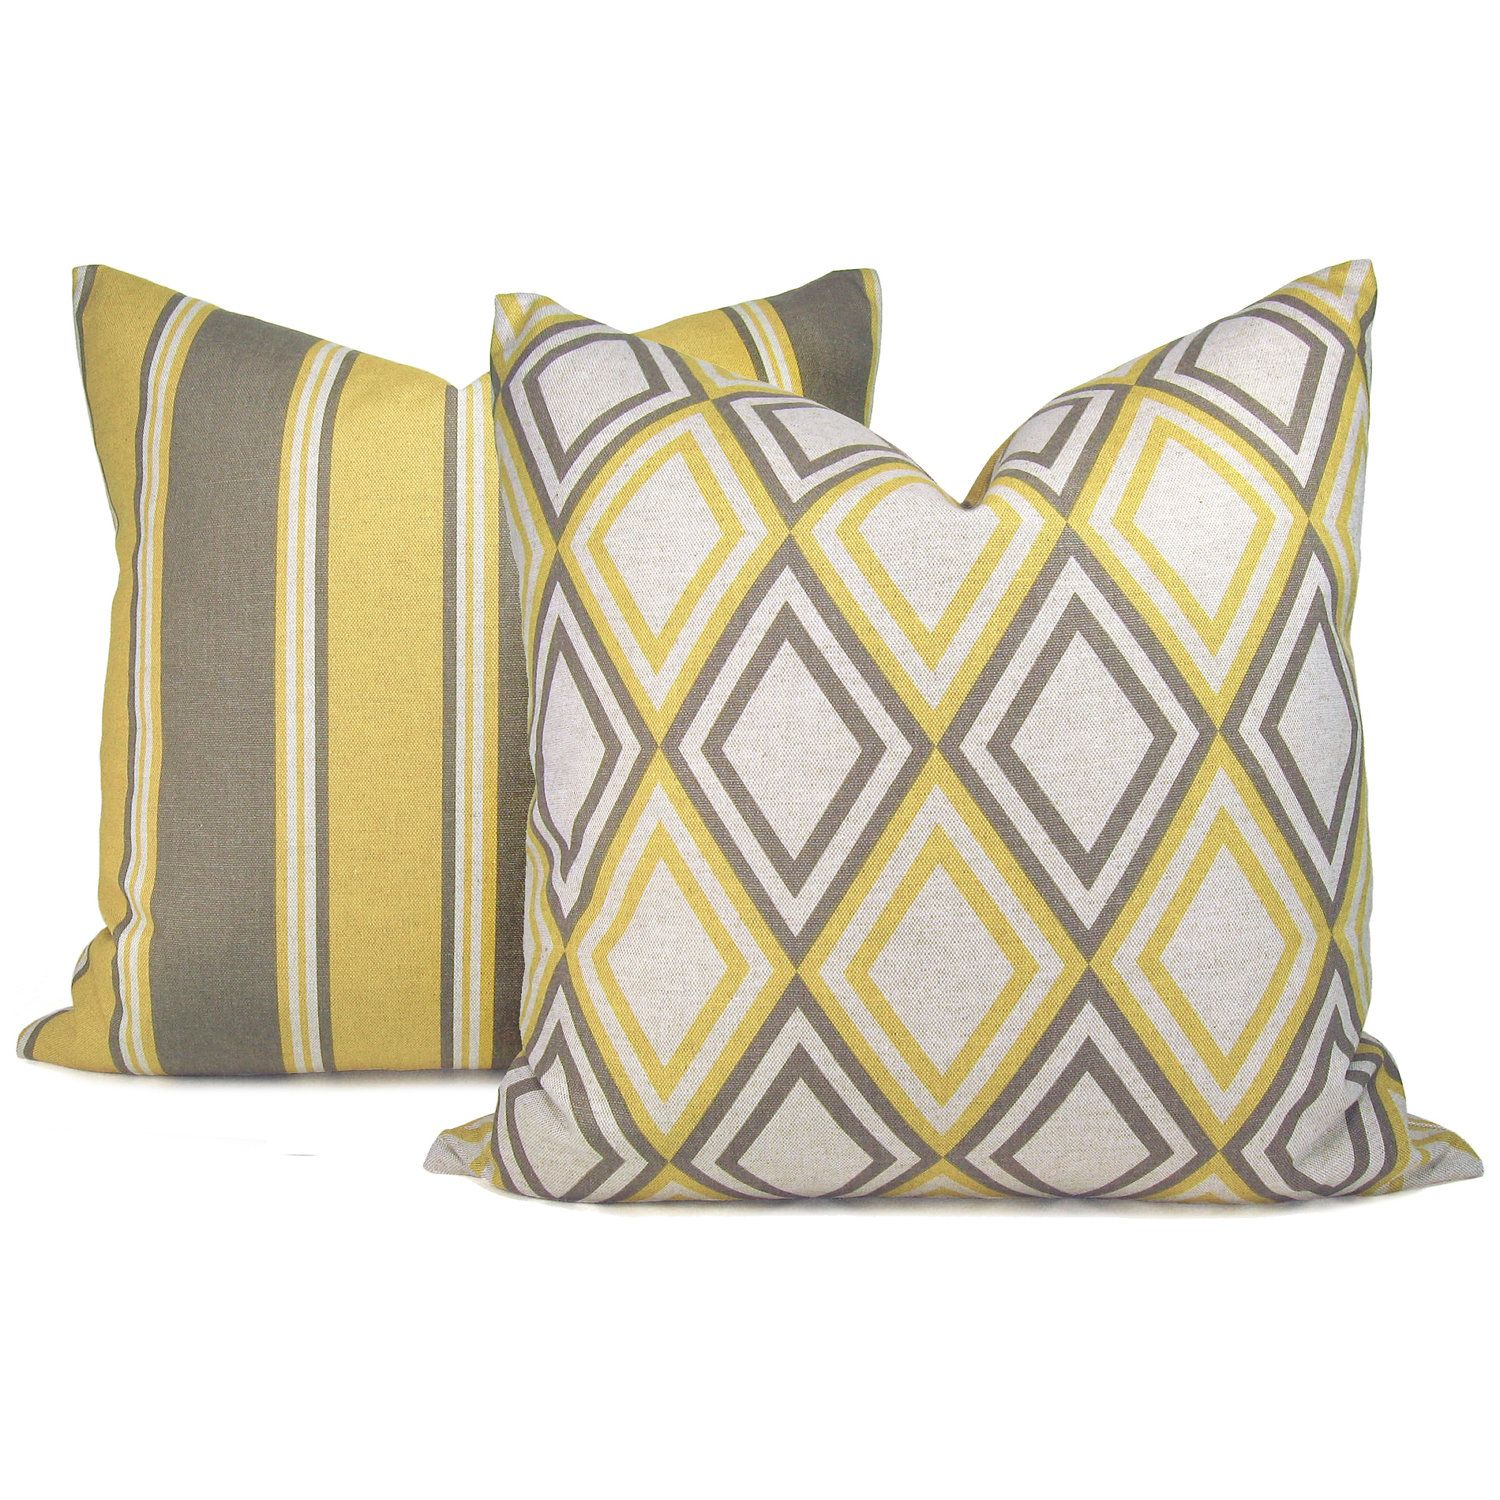 Gray And Yellow Pillow Cases Geometric Print And Stripe